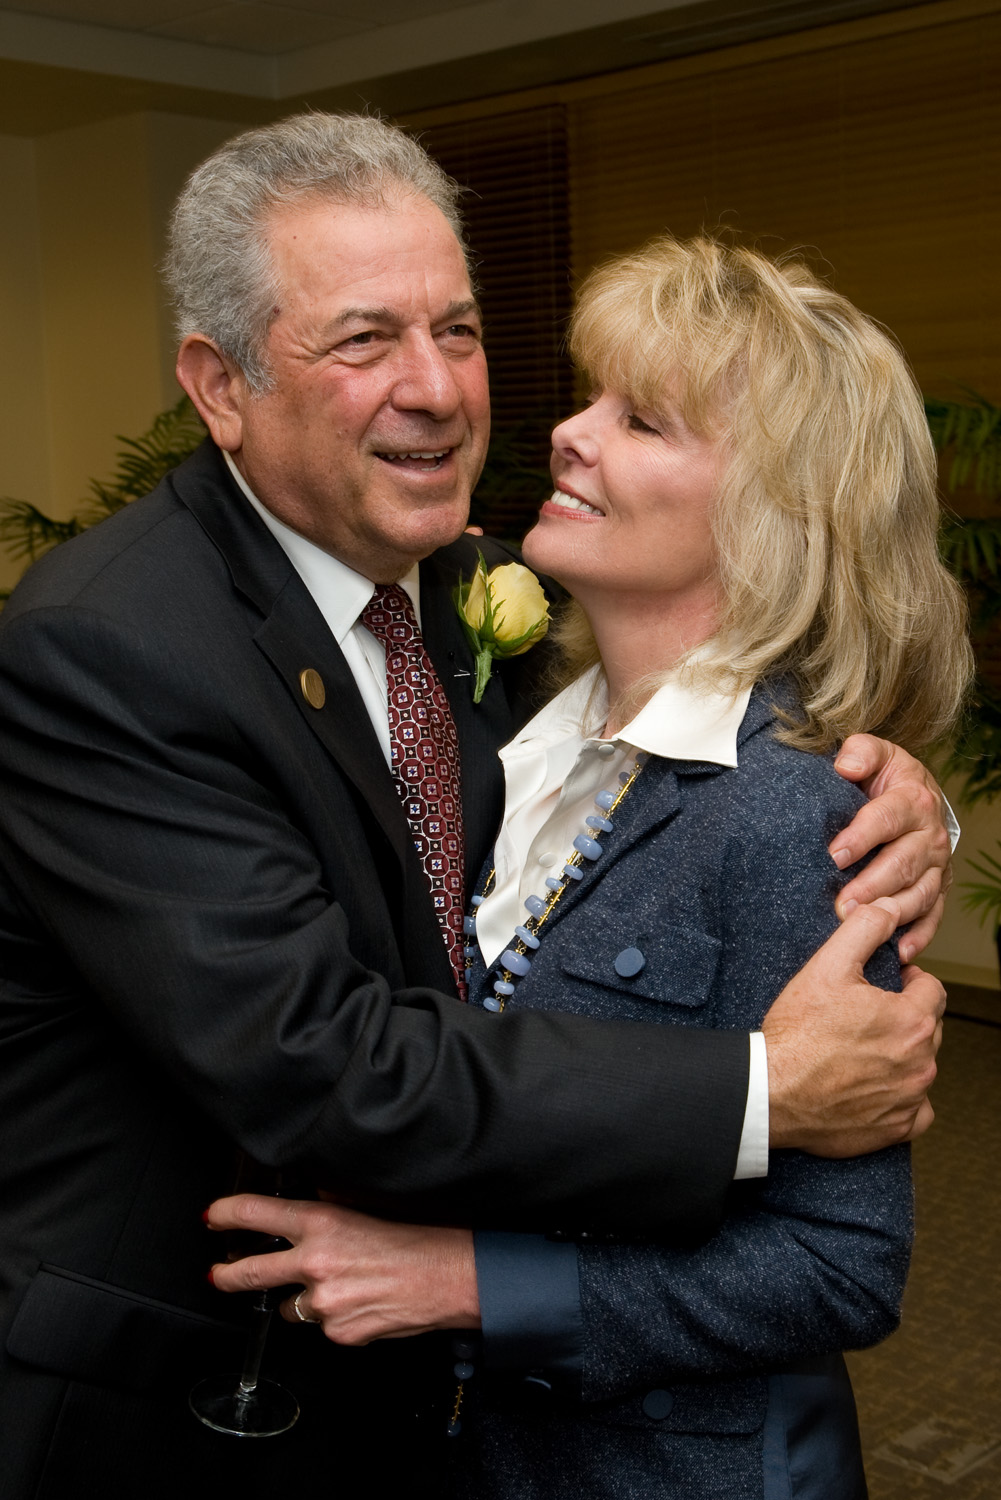 Richard Rainwater with his wife, Darla Moore, in 2010 .